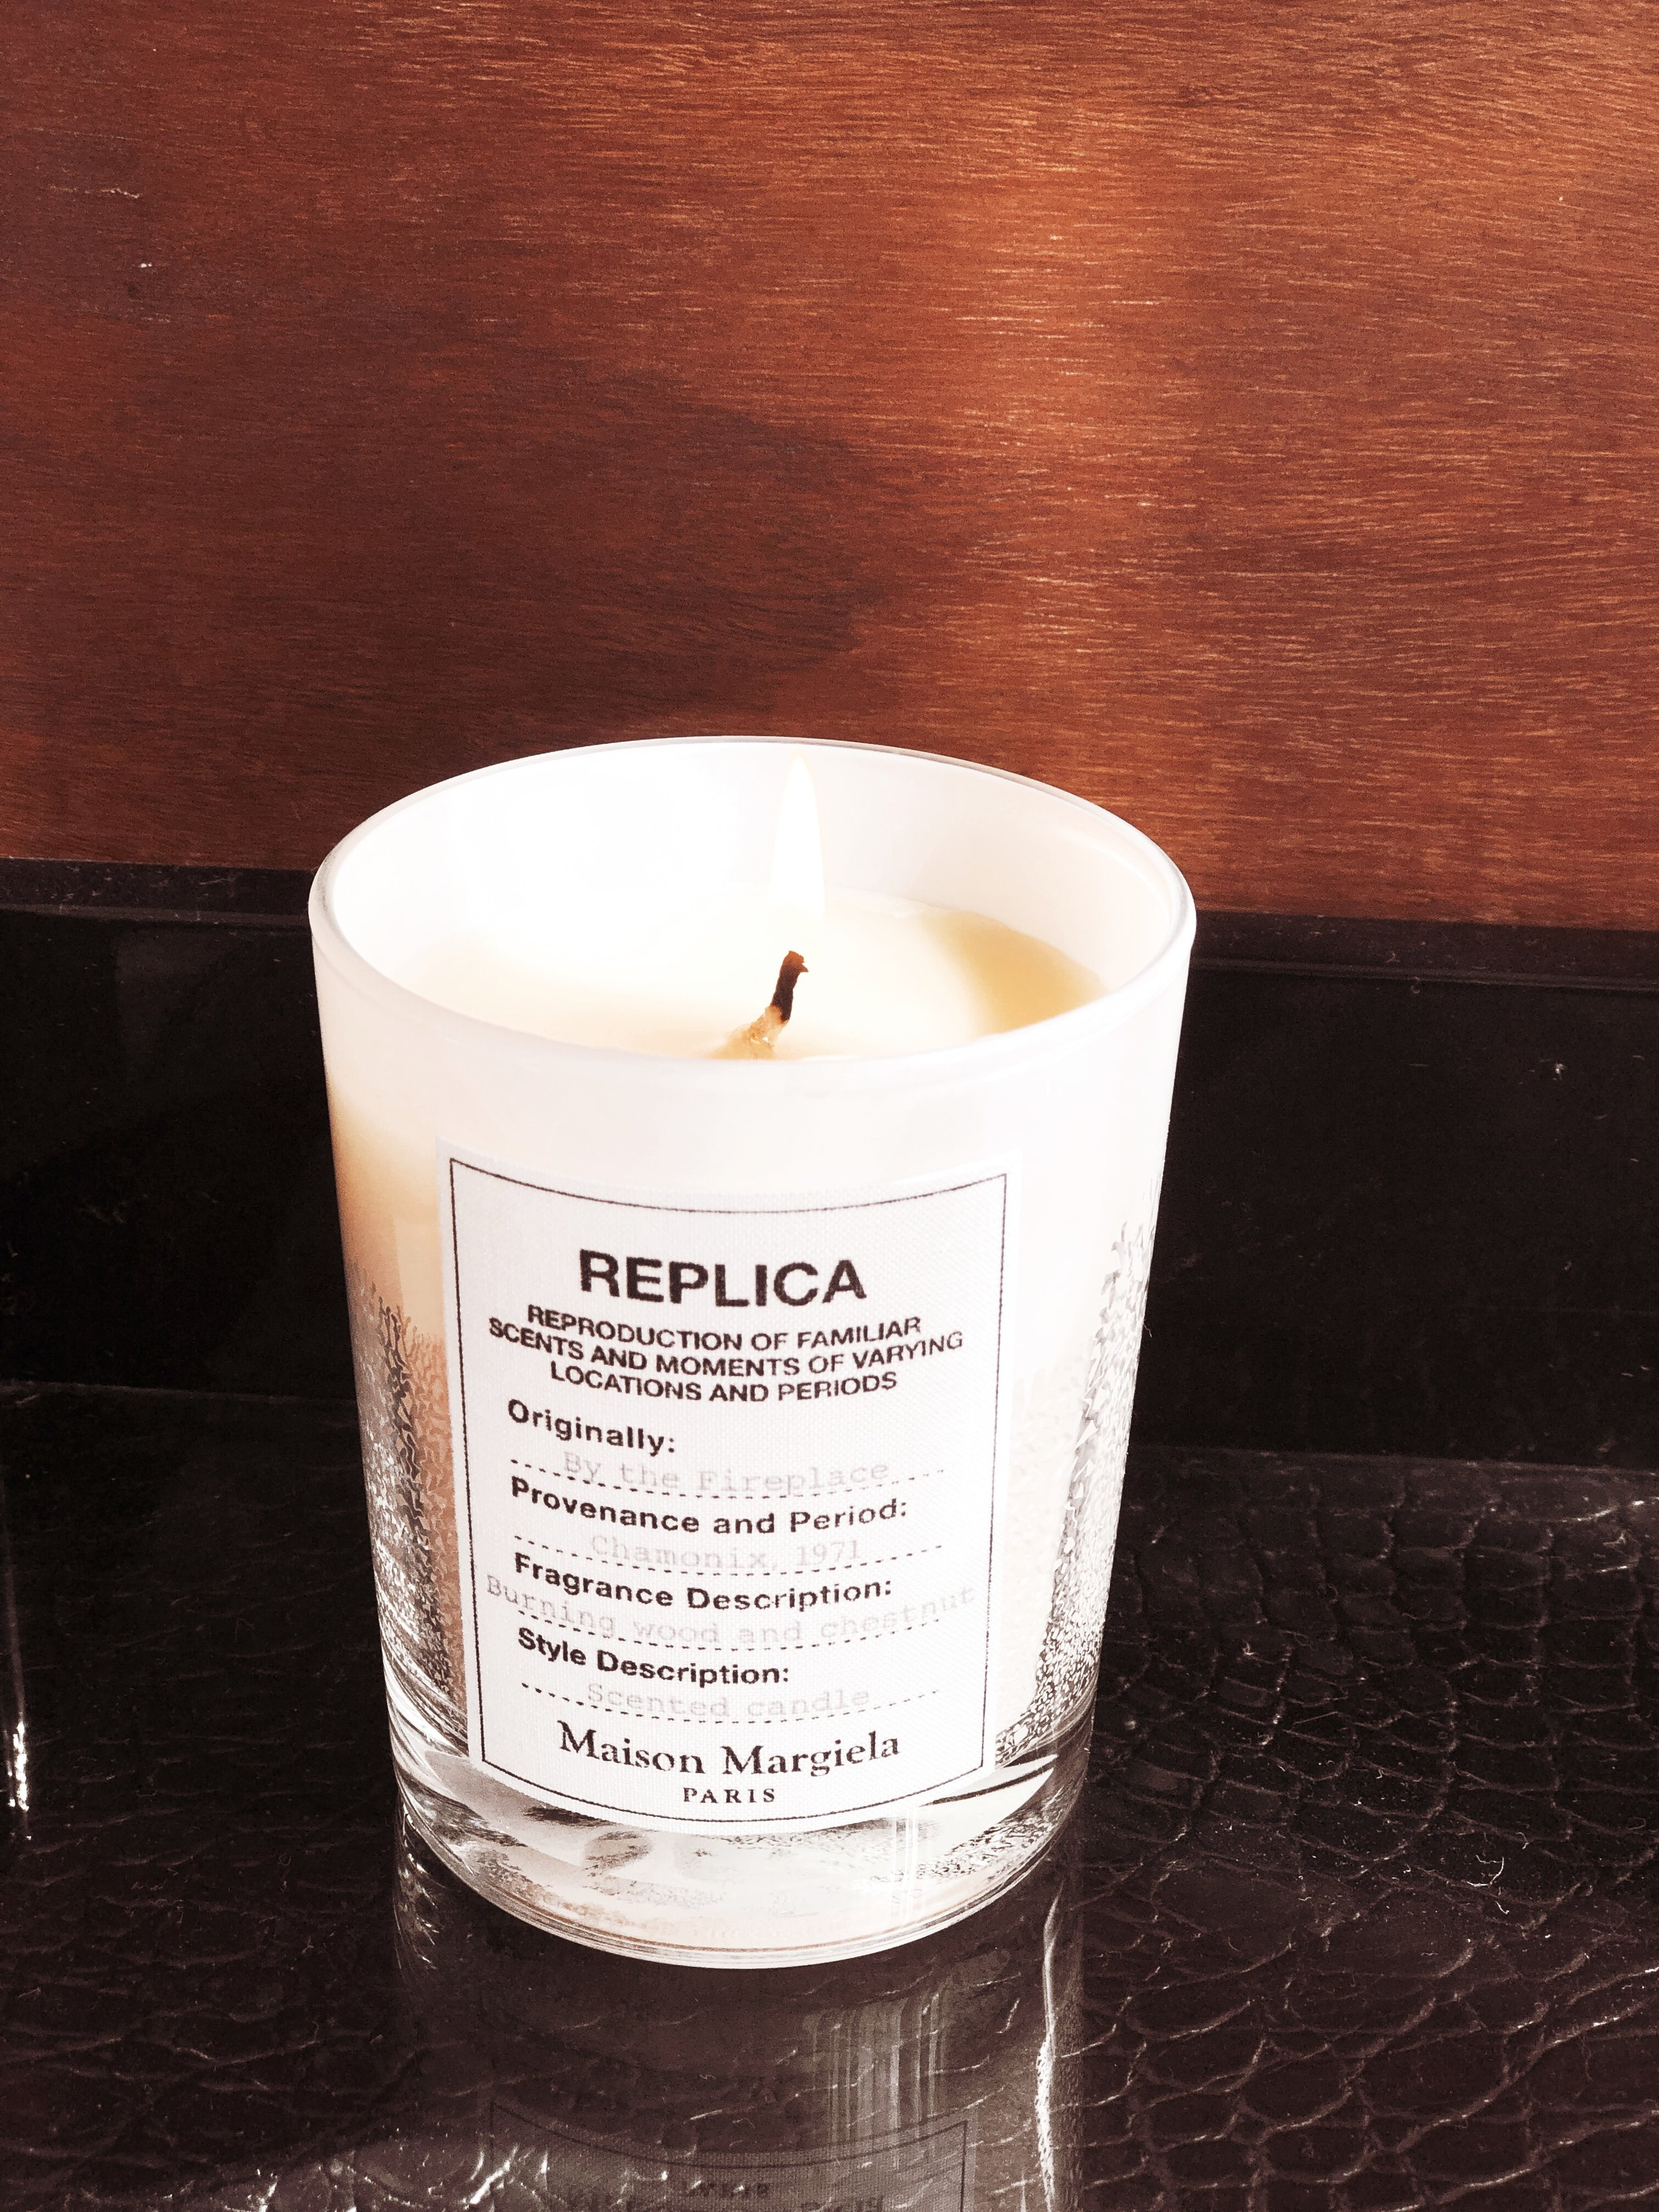 july-2019-lolla-winter-candles-velas-favoritas-inverno-replica-maison-margiela-firplace-lolla.JPG